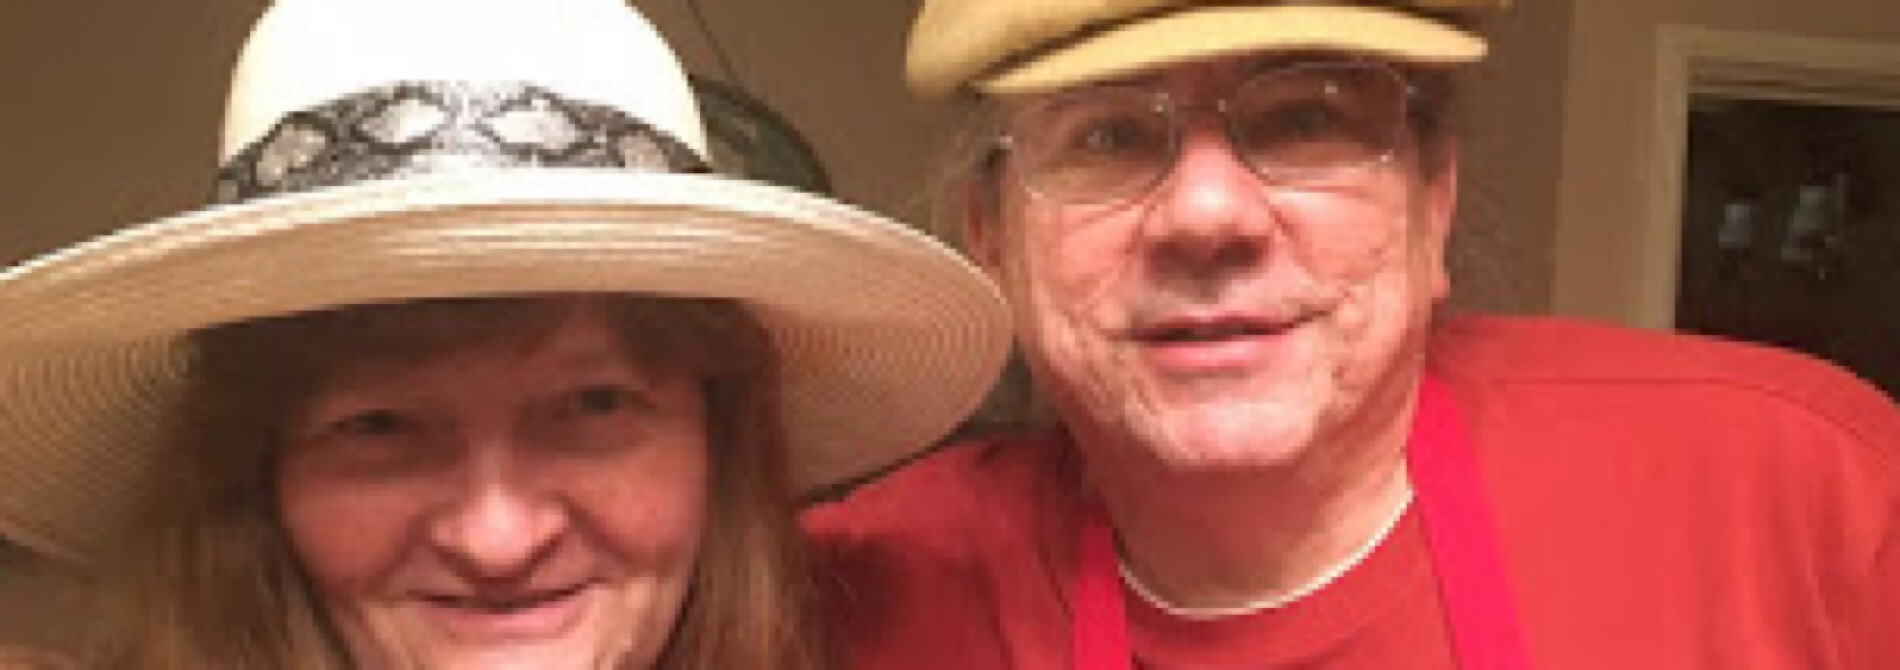 man in red shirt with woman in white hat